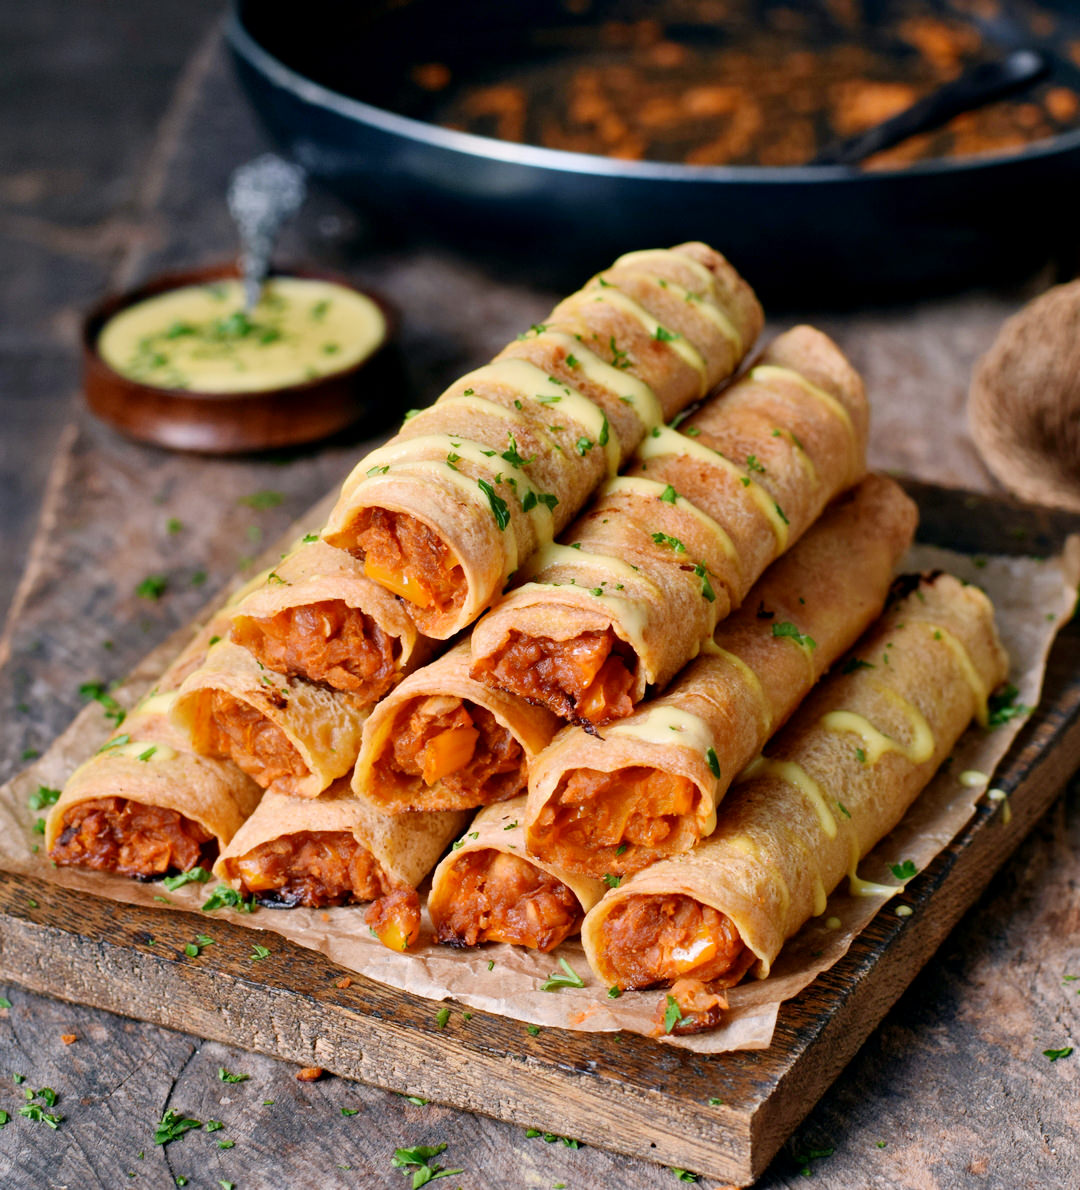 These Buffalo Chickpea Taquitos are crispy, spicy, and satisfying! No chicken needed for this protein-rich and delicious recipe. The taquitos are gluten-free, vegan, and easy to make!